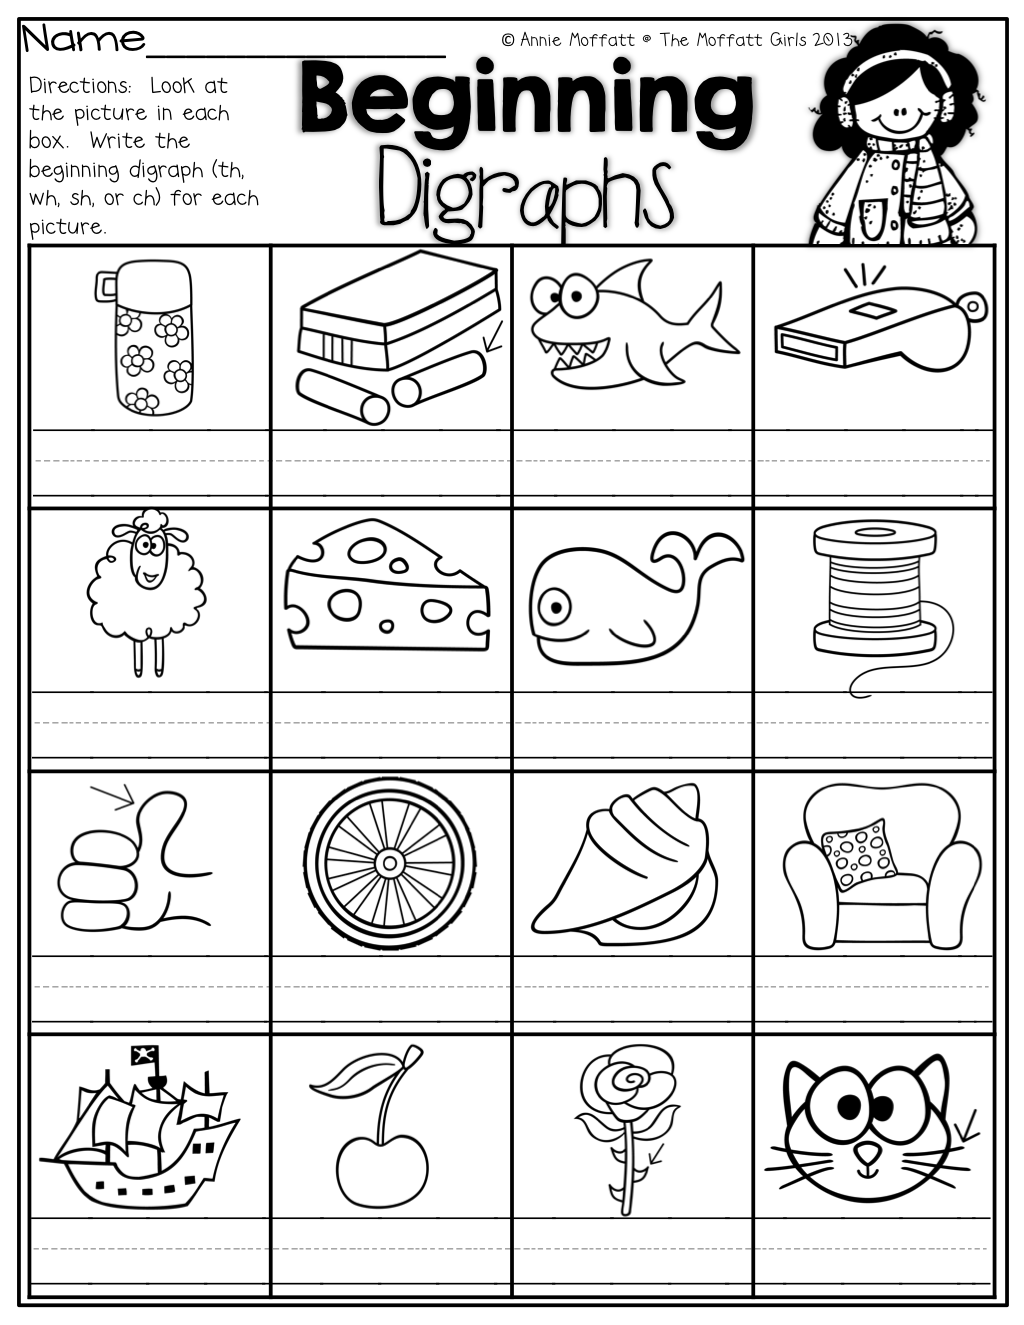 Worksheets Th Sound Worksheets beginning digraphs write the for each picture th wh sh